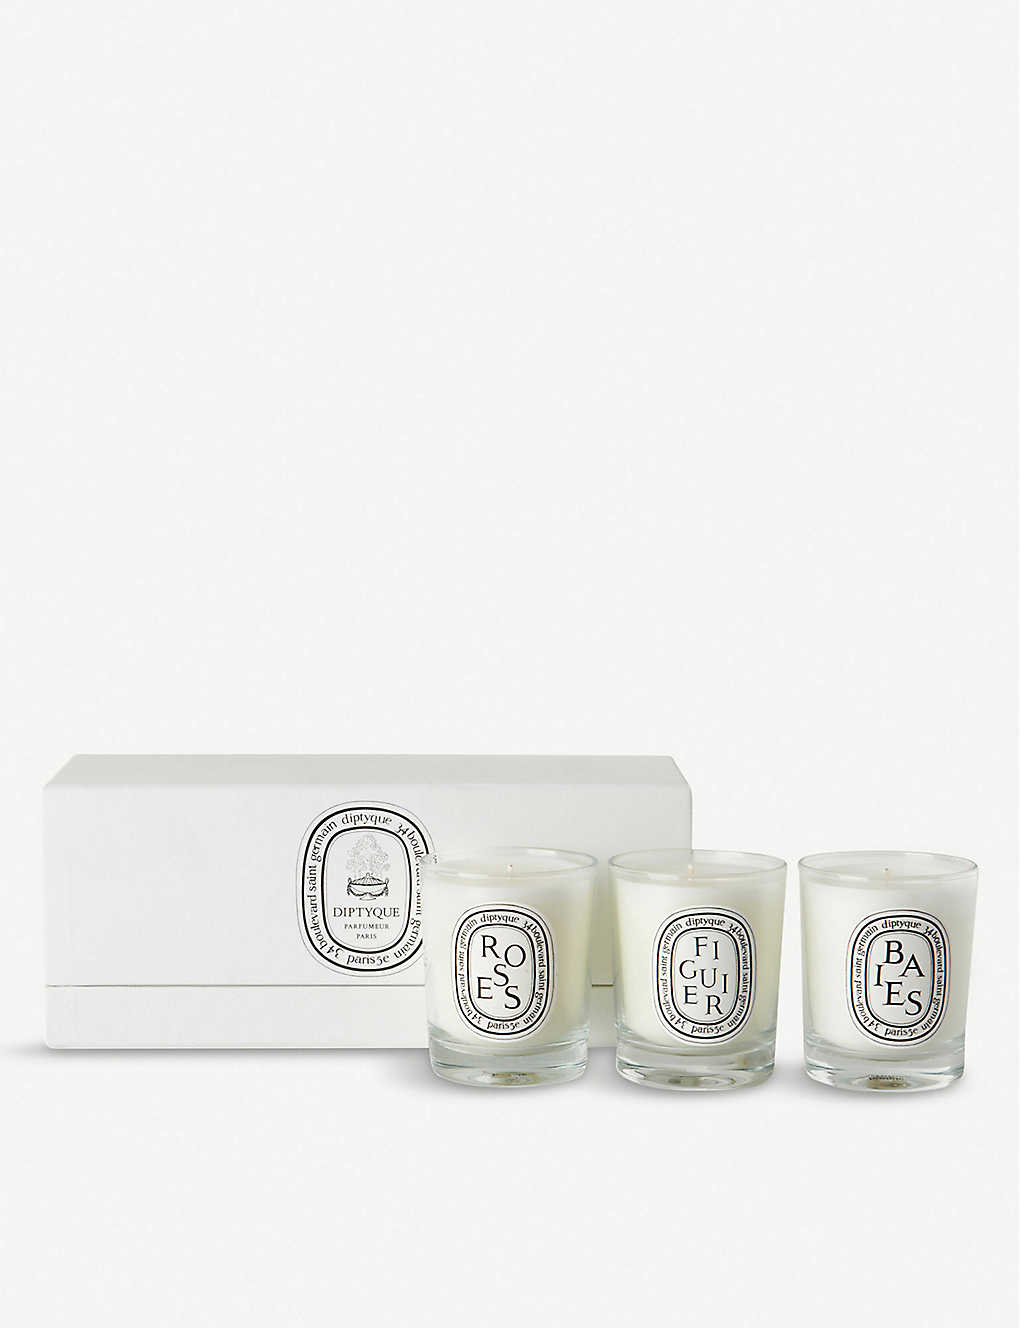 DIPTYQUE   Baies, Figuier and Roses mini candles 20 x 20g ...